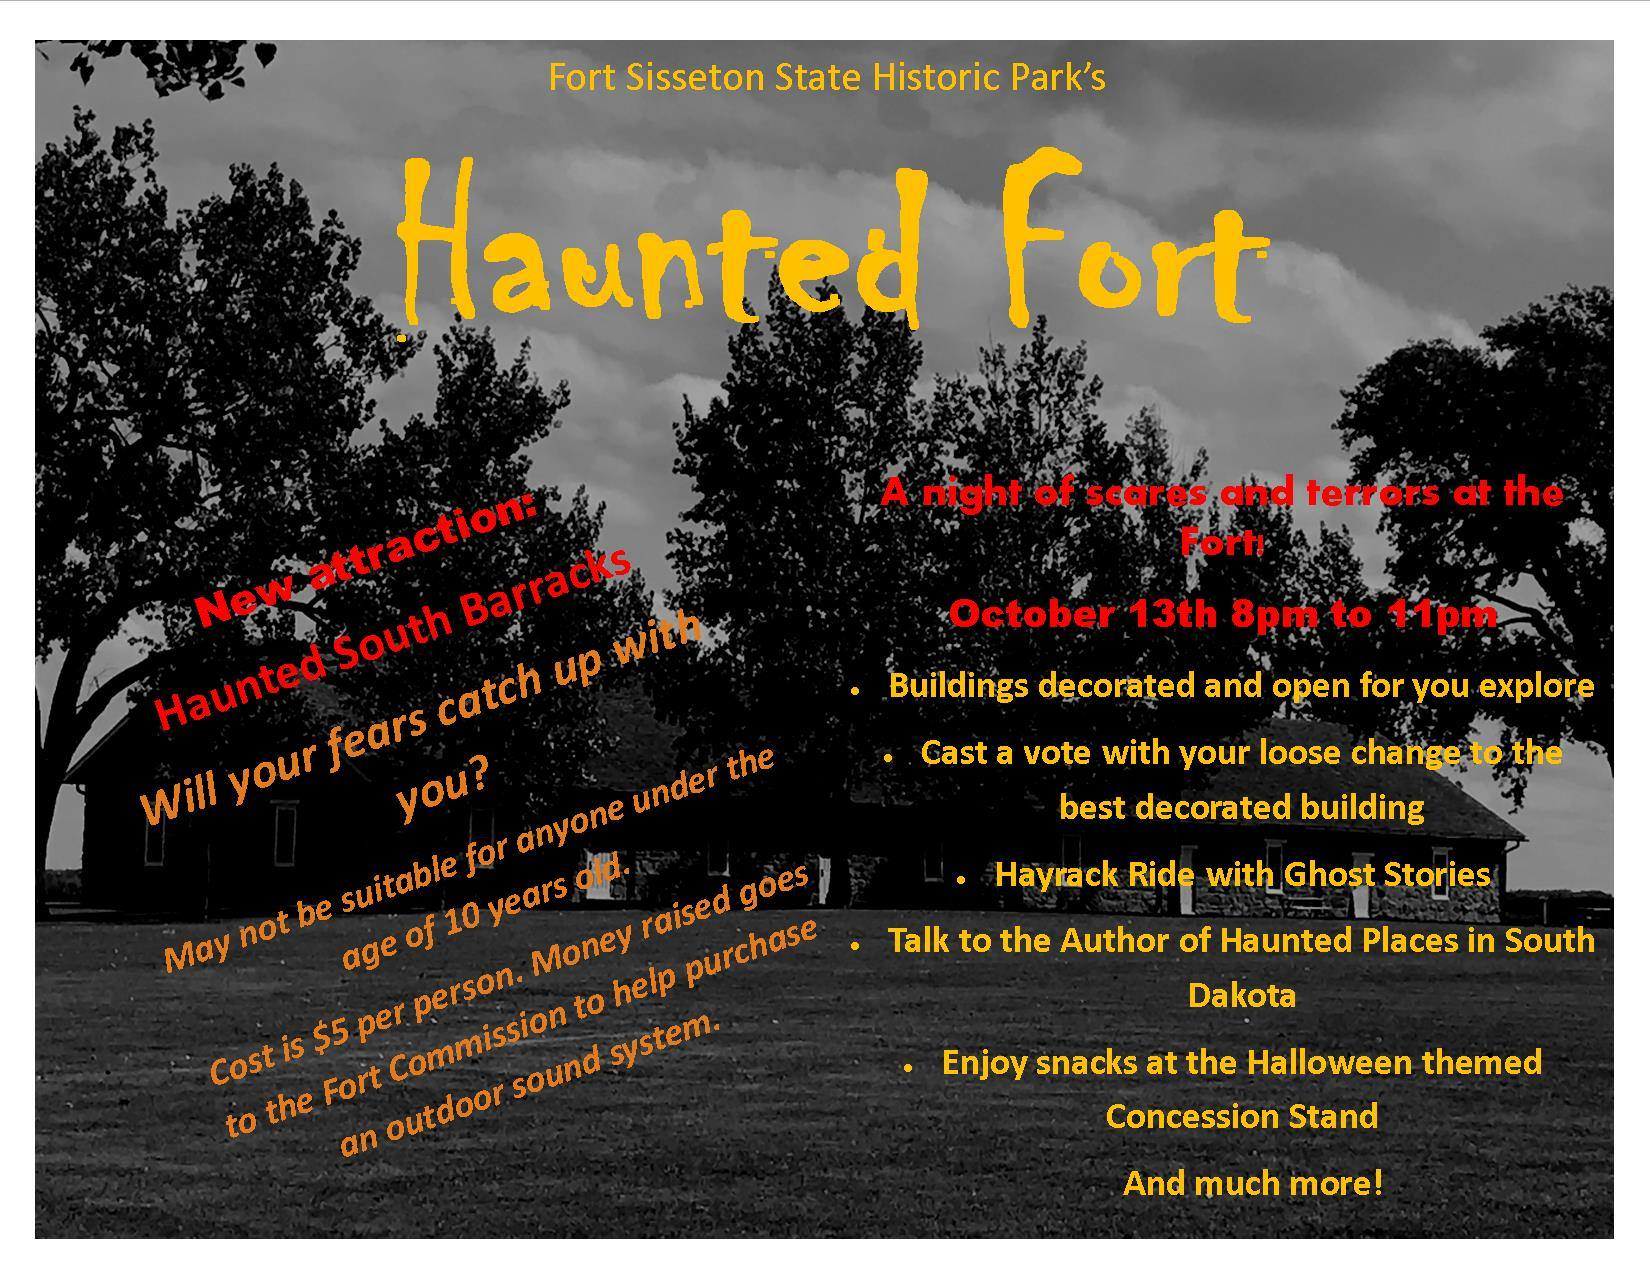 Haunted Fort, Fort Sisseton Historic State Park - Everything